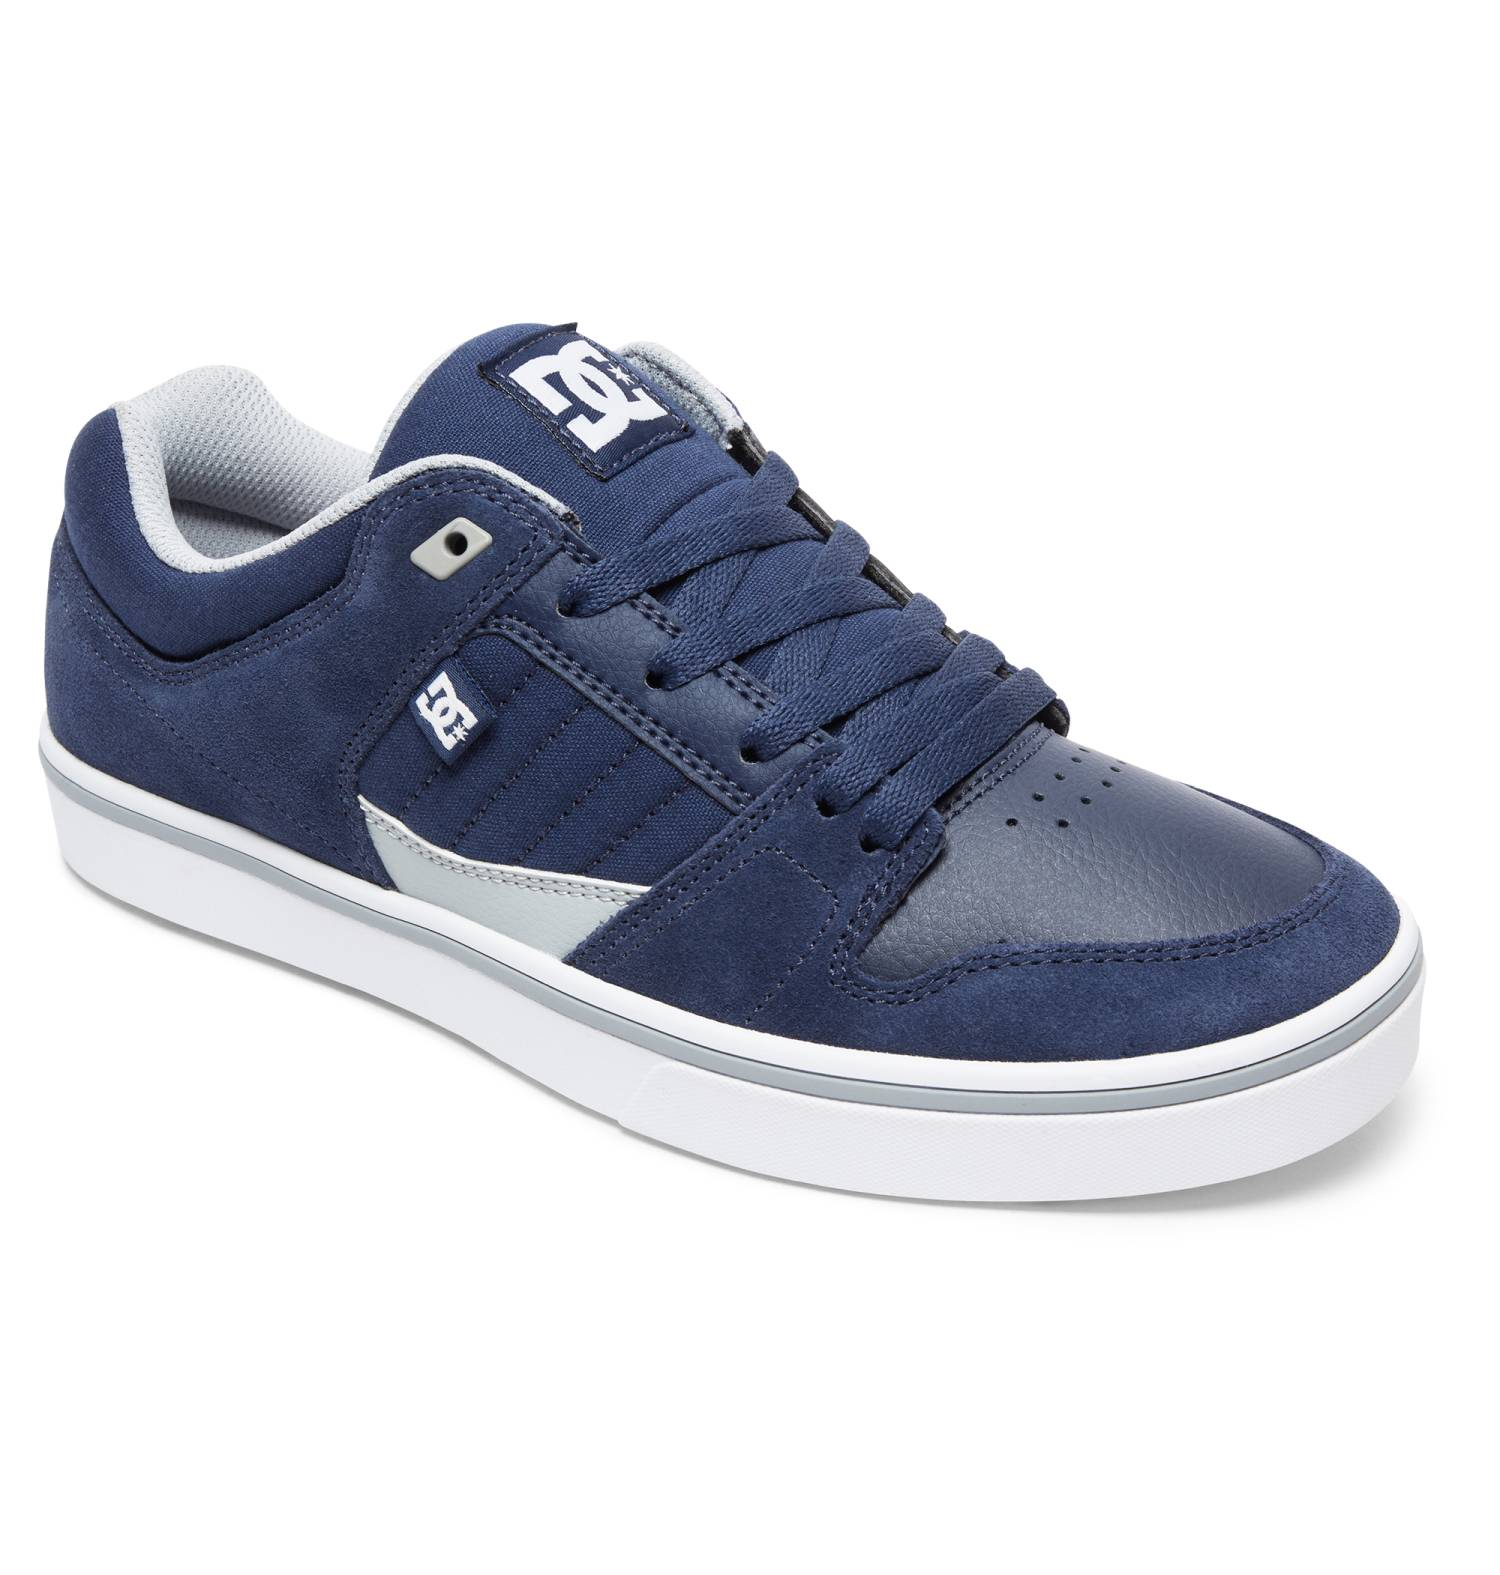 DC Shoes Course 2 navyblau Navy Blue White Low-Cut Sneaker Skateschuhe Herren